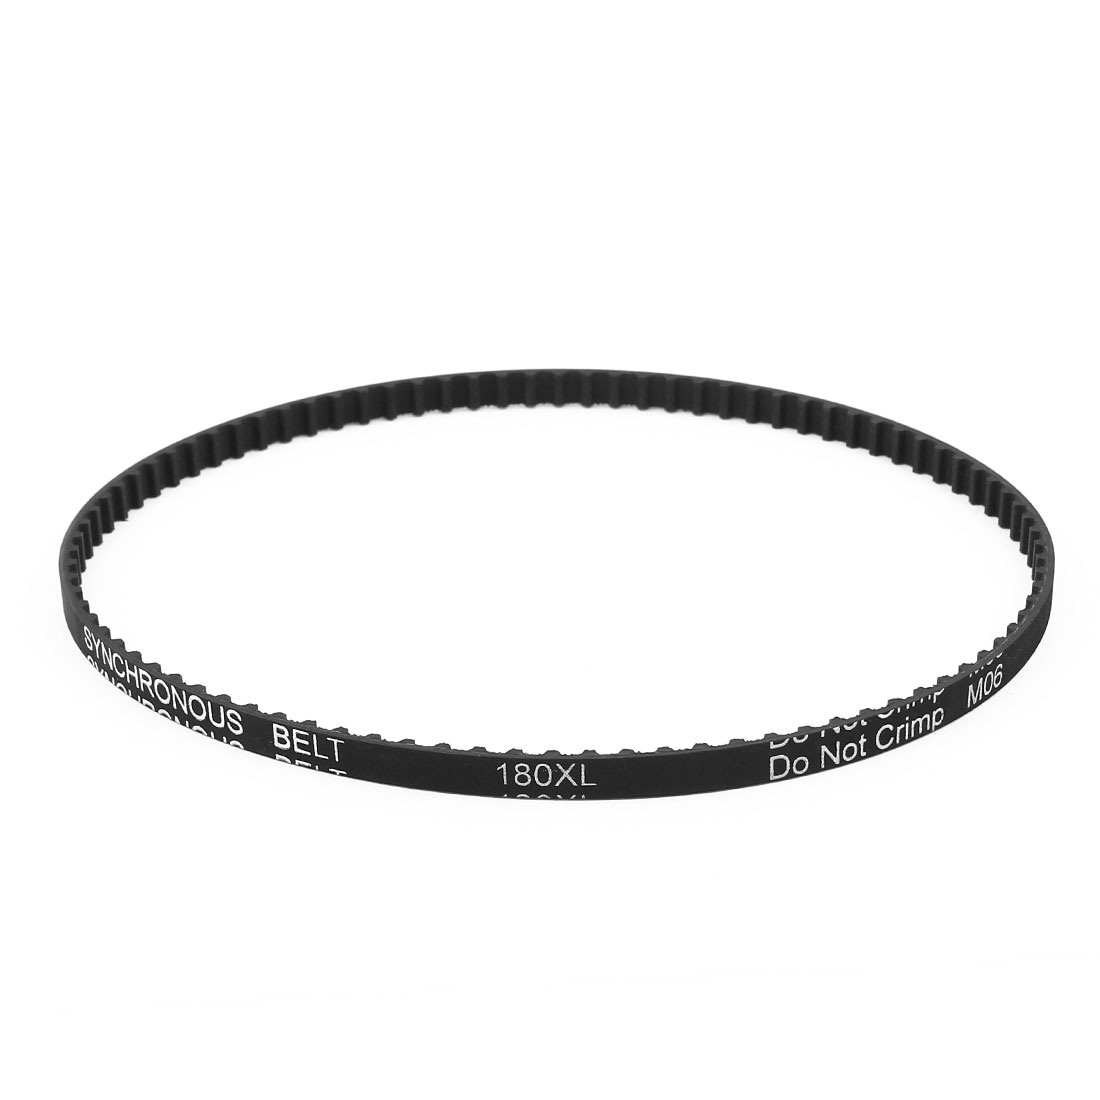 180XL 025 Engine Rubber Timing Belt 90 Teeth 5.08mm Pitch 6.4mm Width